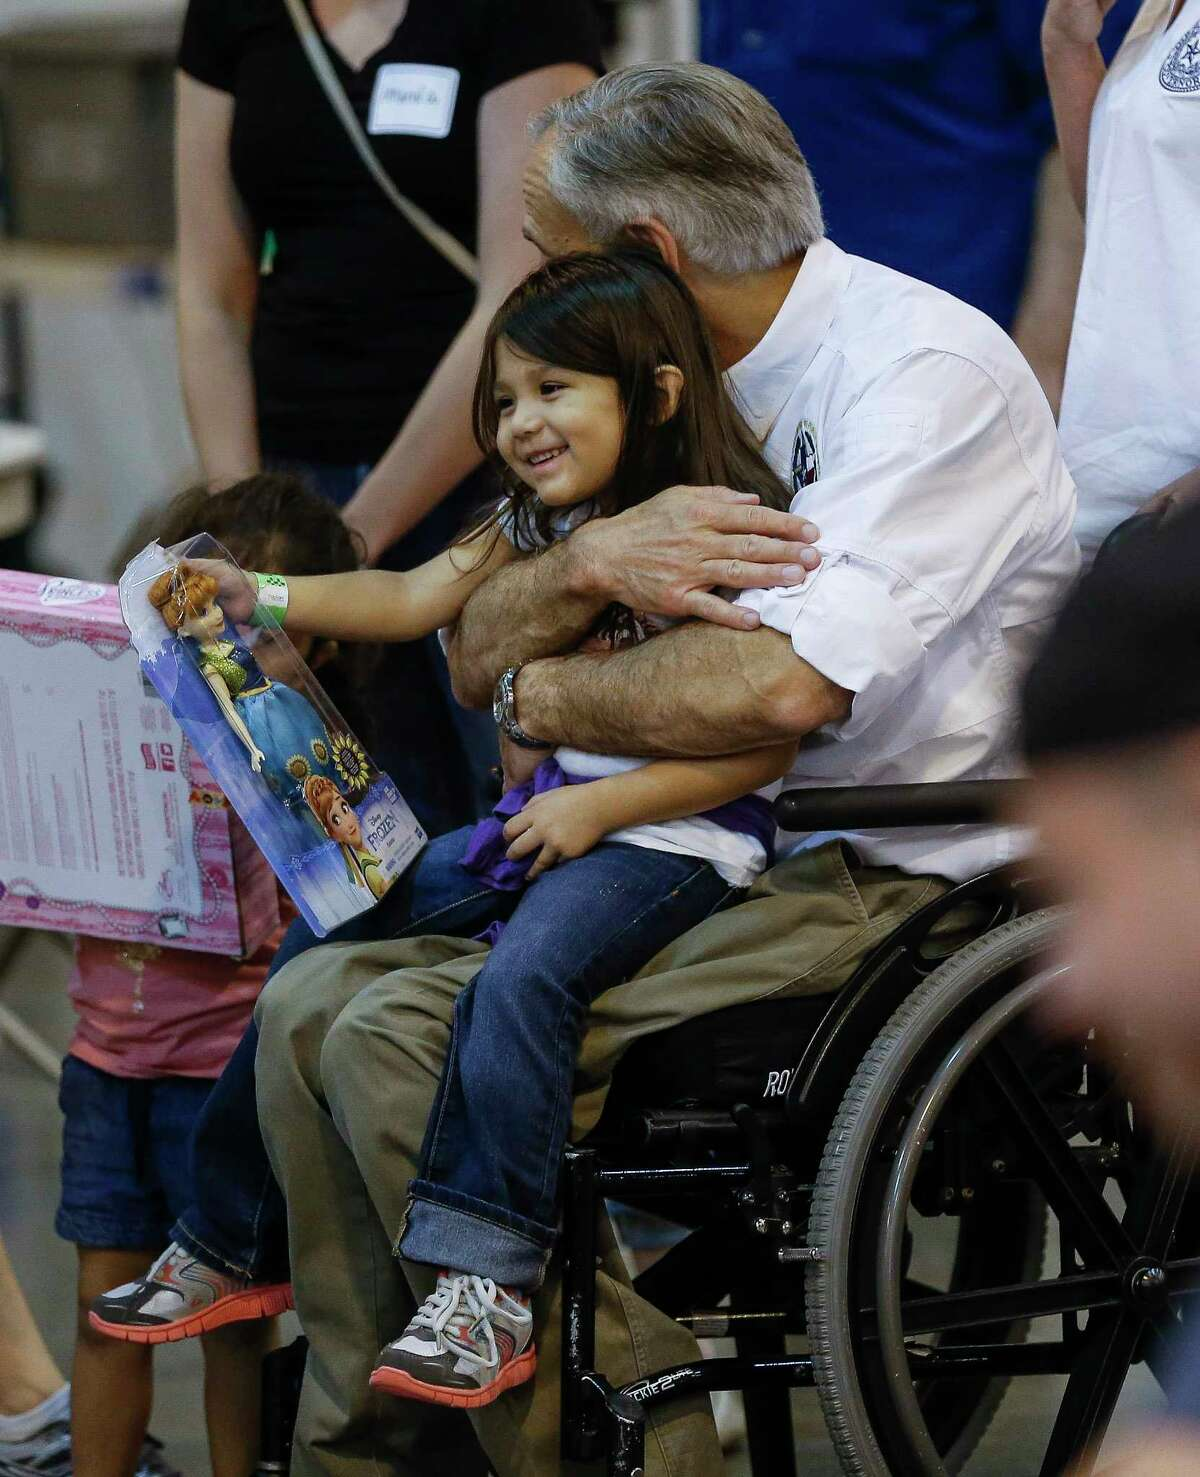 Texas Governor Greg Abbott hugs a child while visiting Tropical Storm Harvey evacuees at NRG Center in Houston Saturday, Sept. 2, 2017.